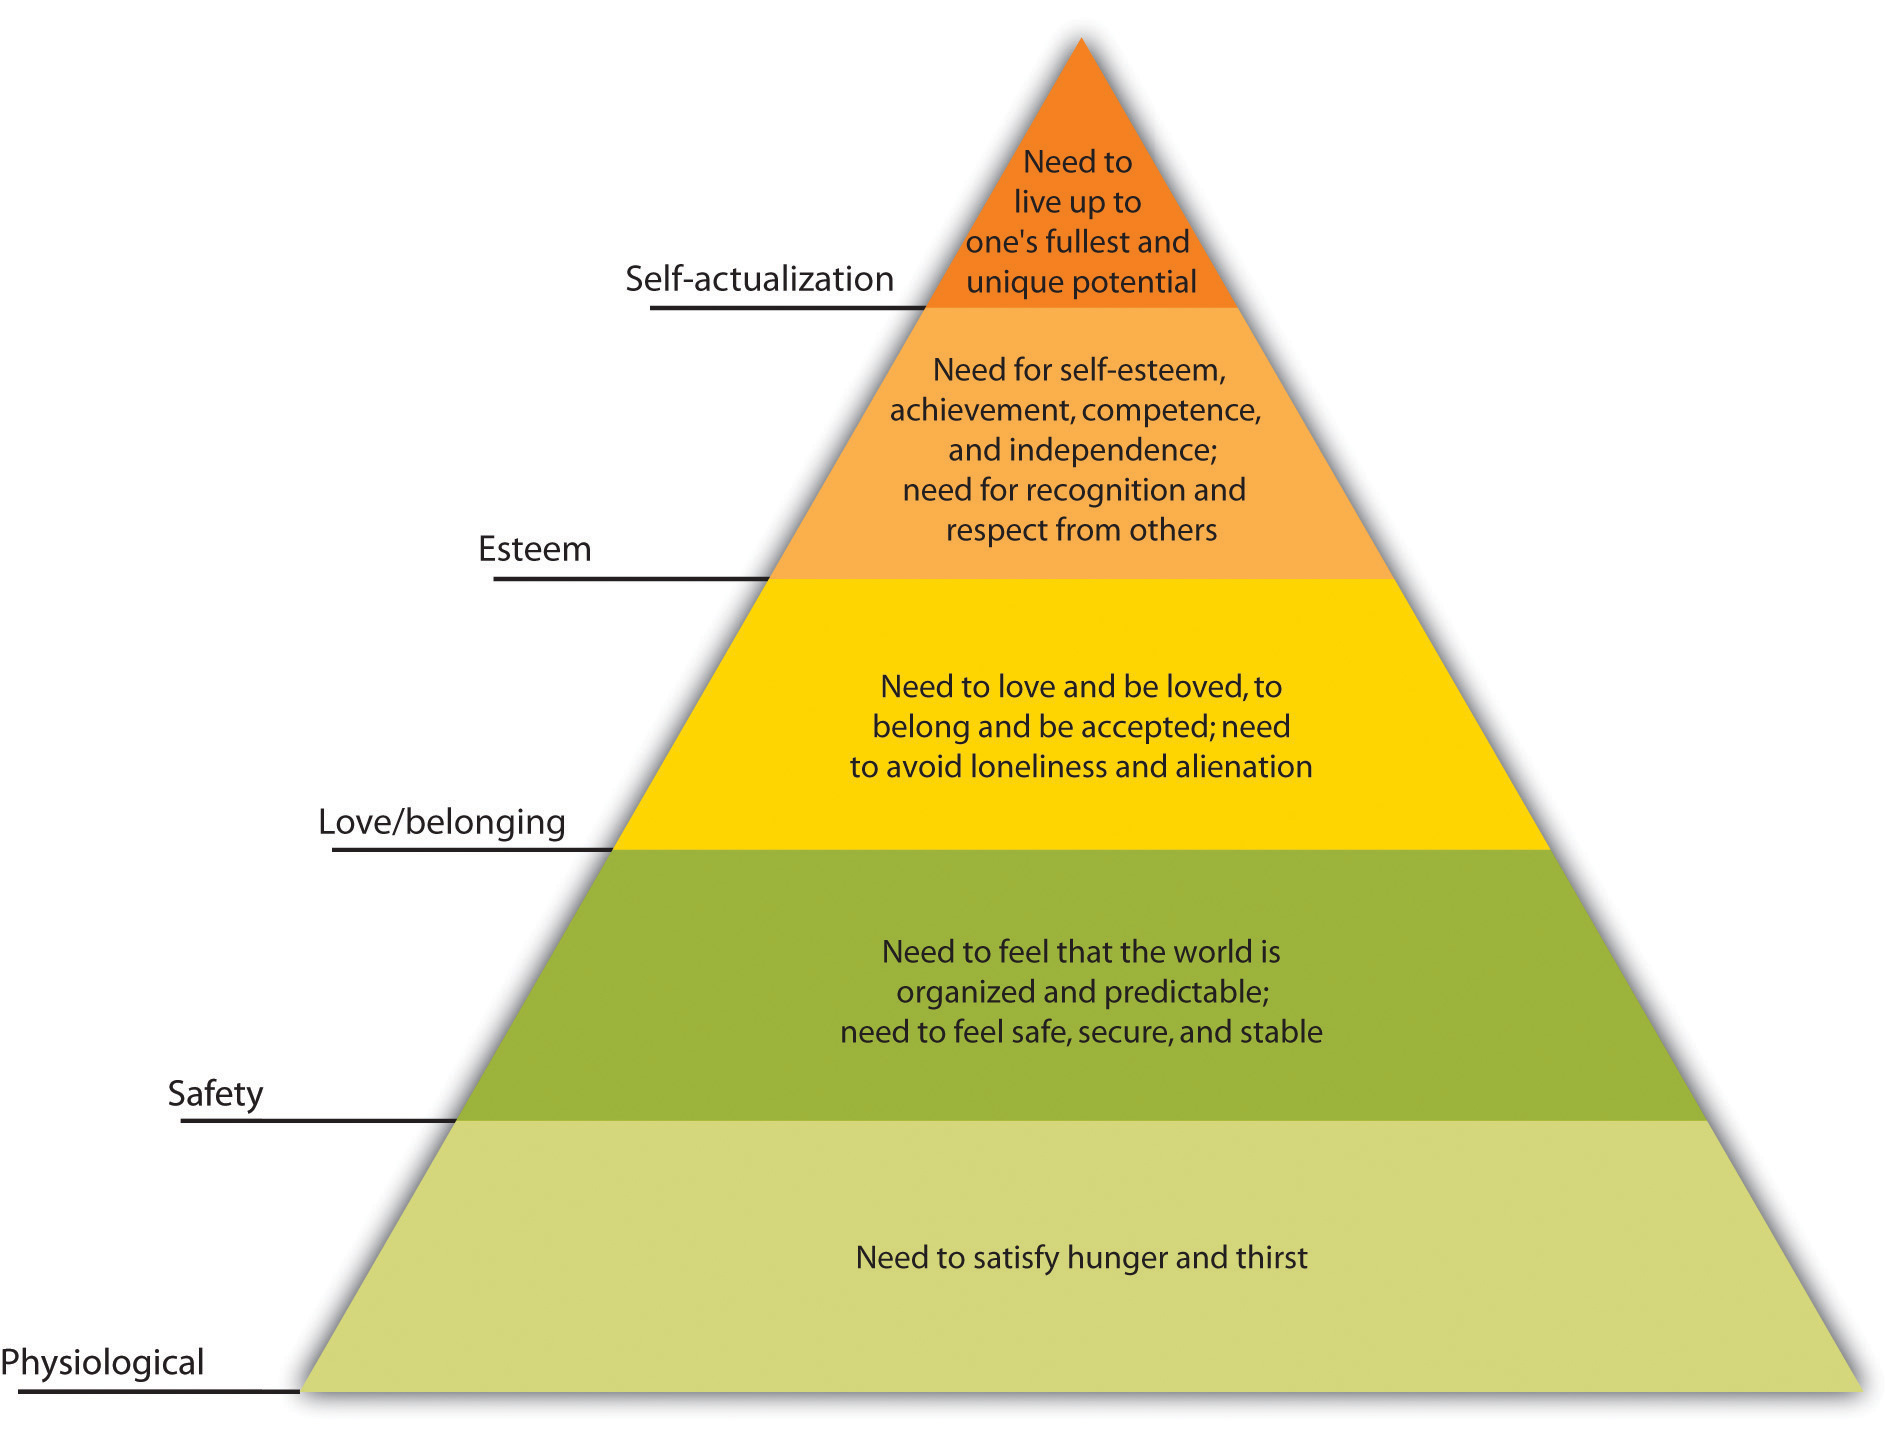 compare maslows and rogers theory of self actualization Maslow describes the good life as one directed towards self-actualization, the pinnacle need self-actualization occurs when you maximize your potential, doing the best that you are capable of doing.